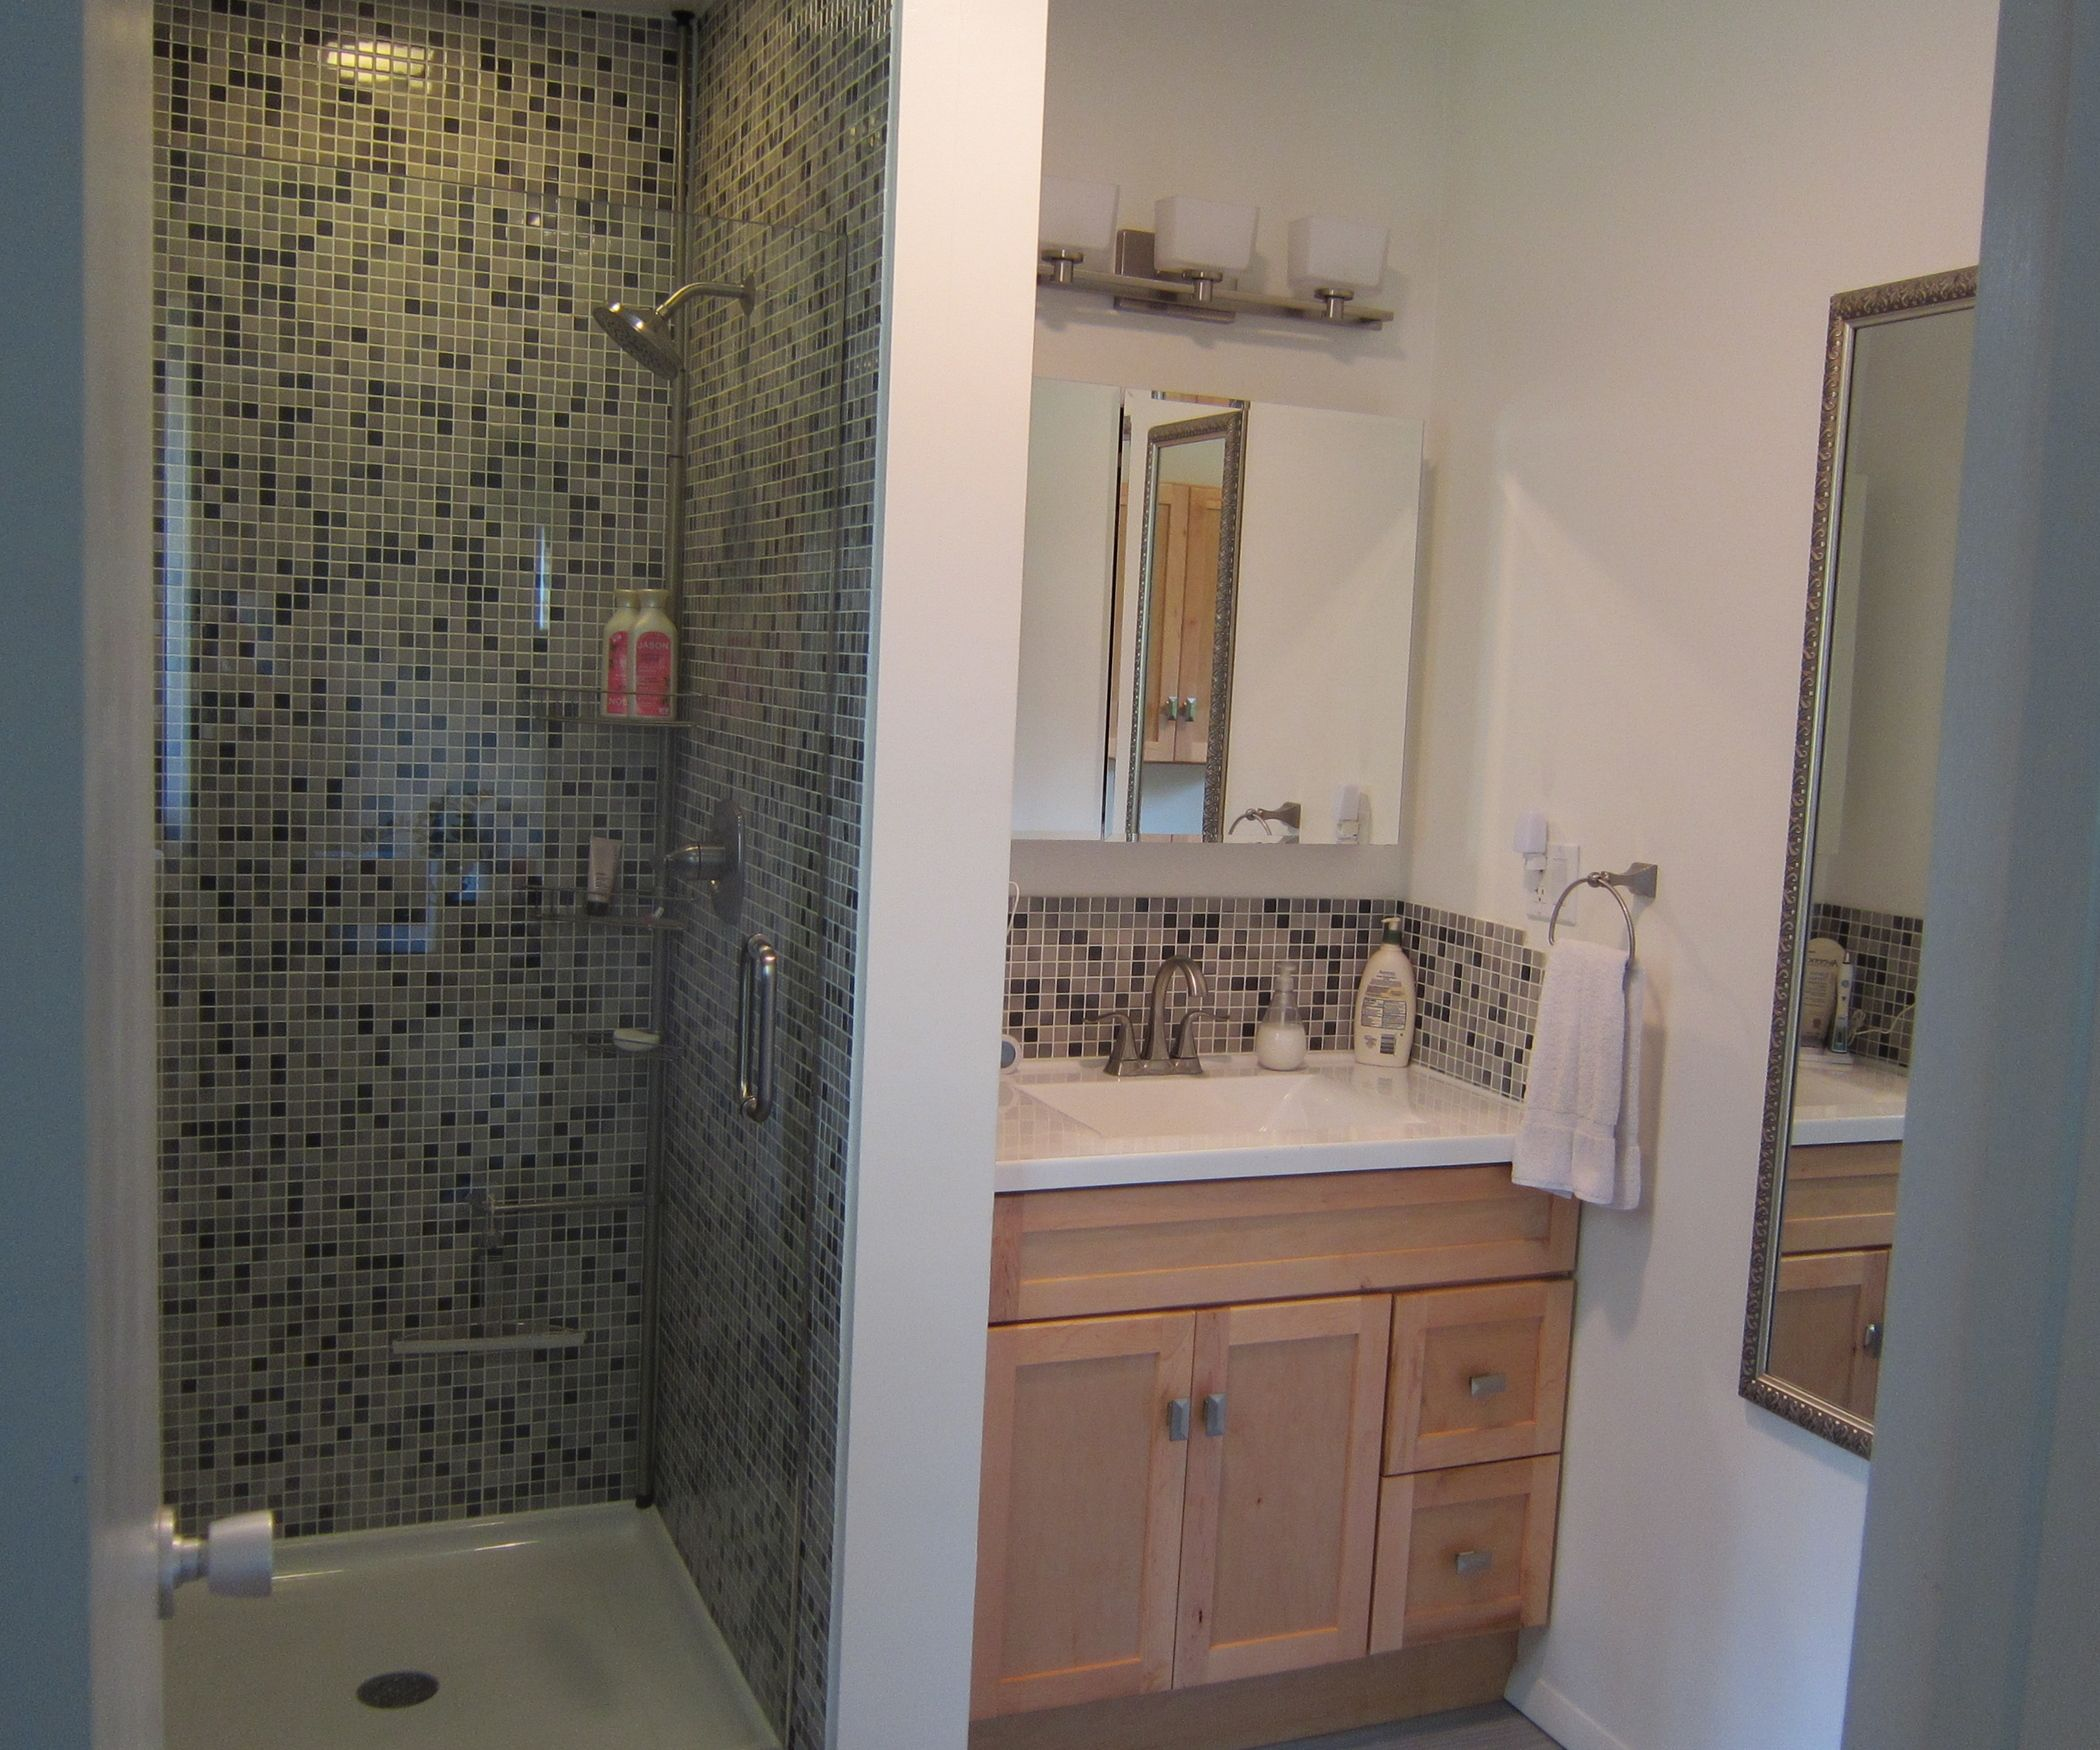 Complete Bathroom Renovation Complete Bathroom Renovations Bathroom Recessed Lighting Small Bathroom With Shower